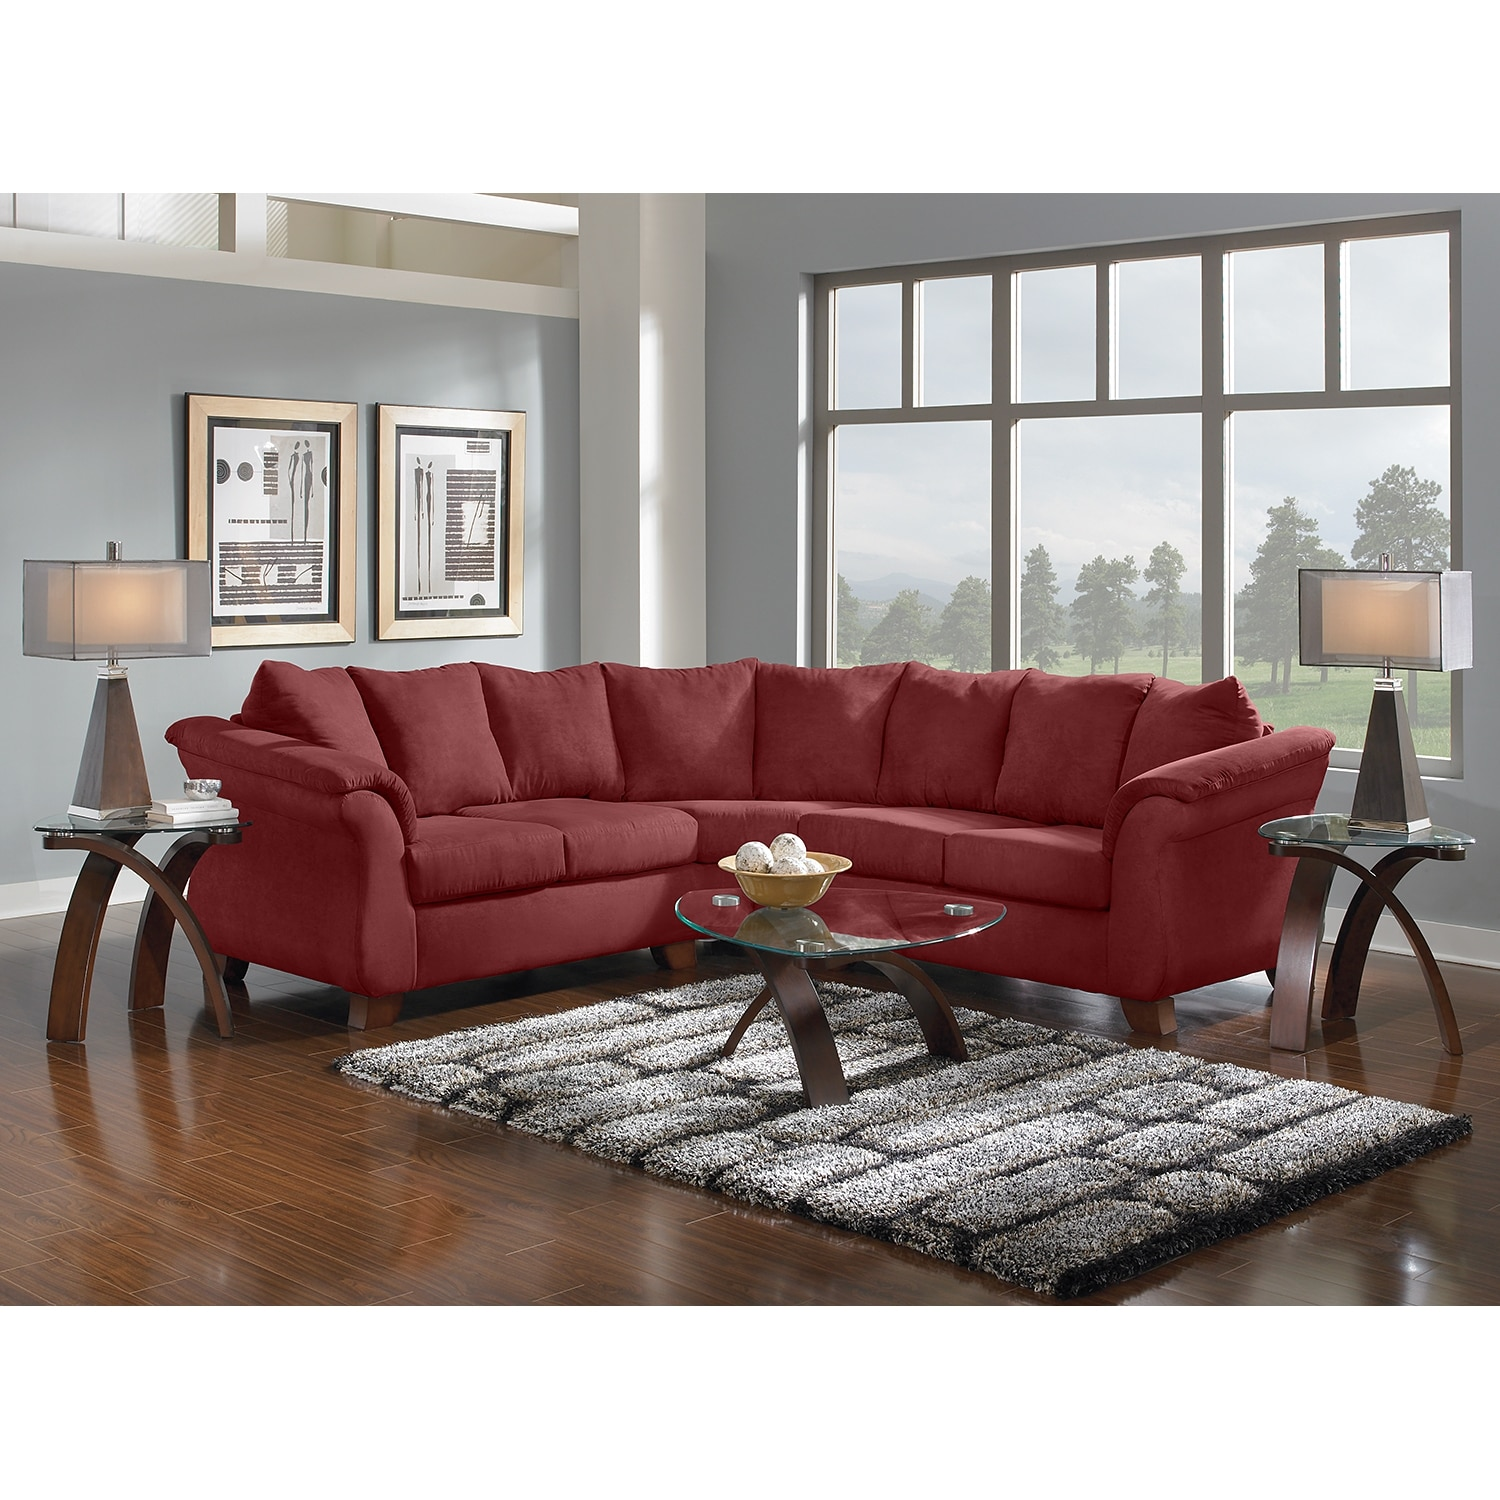 American Signature Furniture Adrian Red II Upholstery 2 Pc Sectional